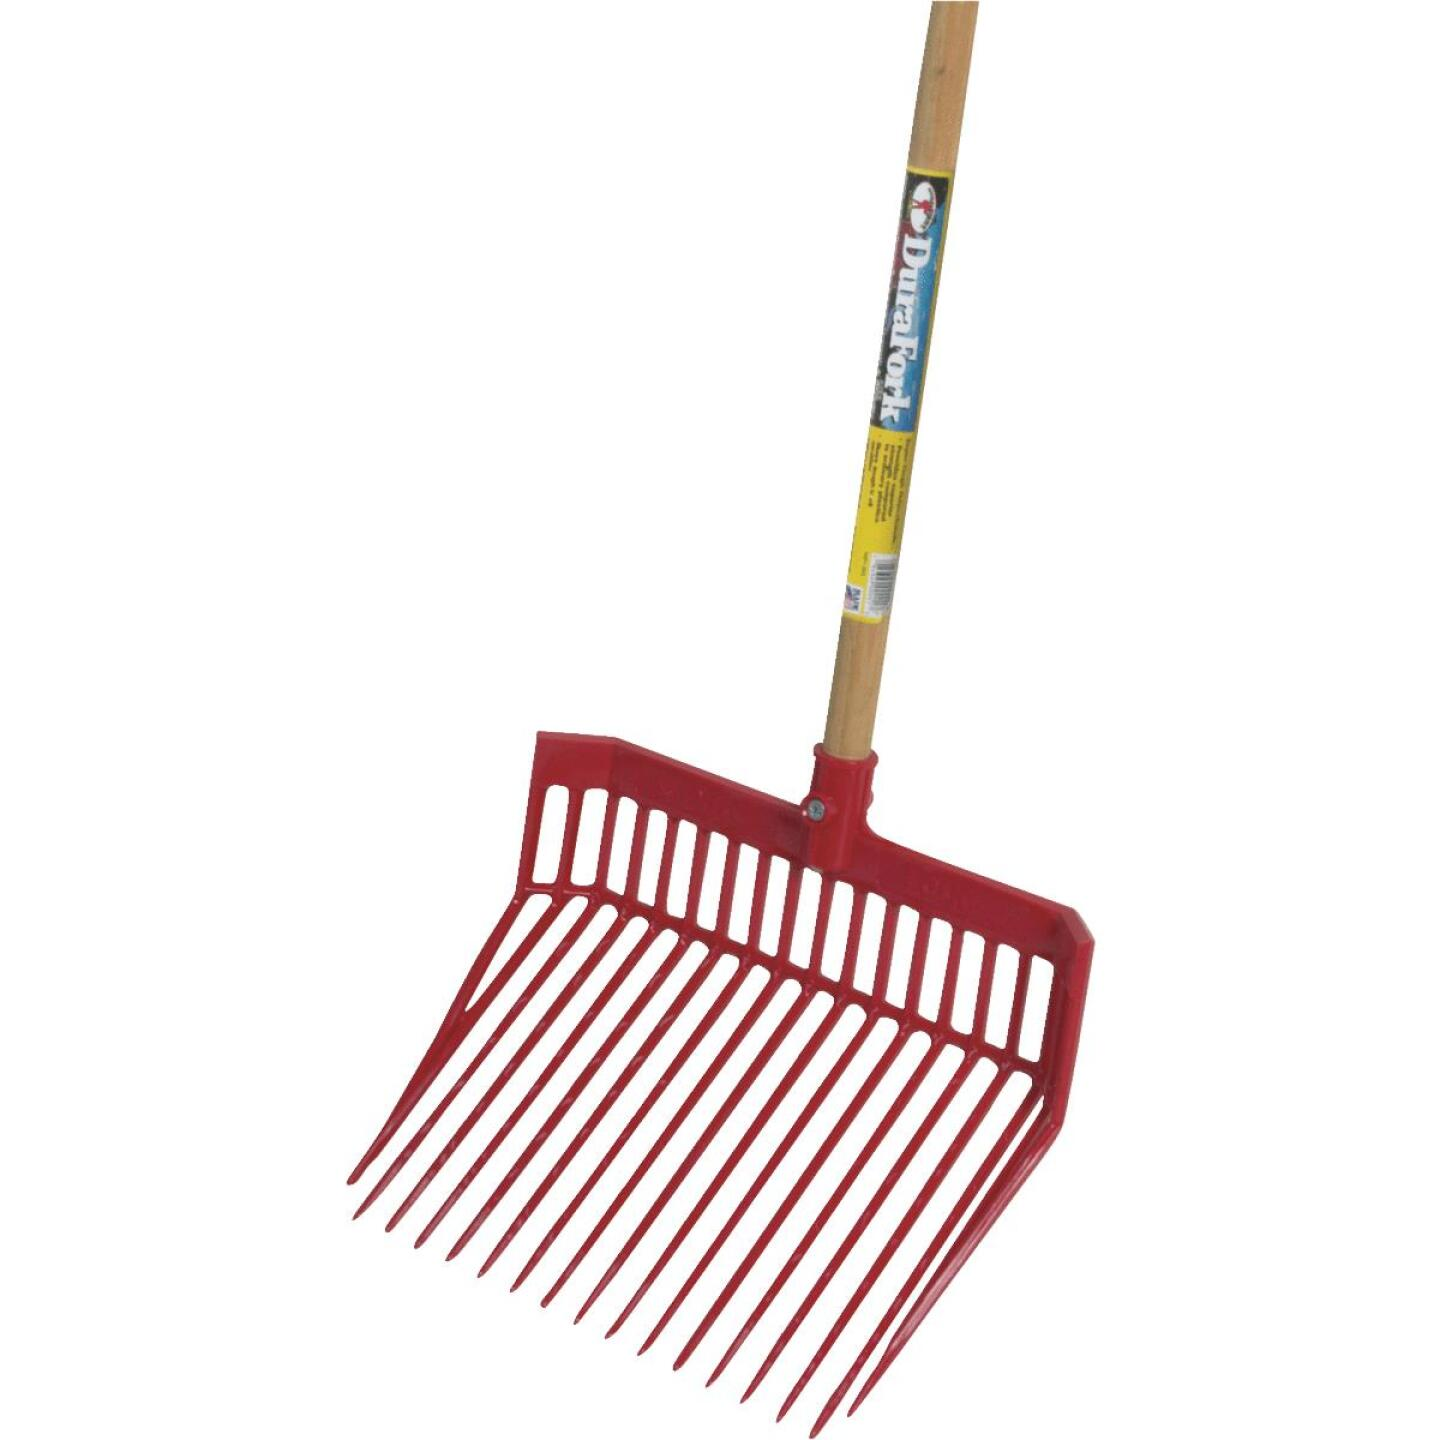 Little Giant DuraFork Polycarbonate 18-Tine 52-1/2 In. Hardwood Handle Large Stable Fork, Red Image 1